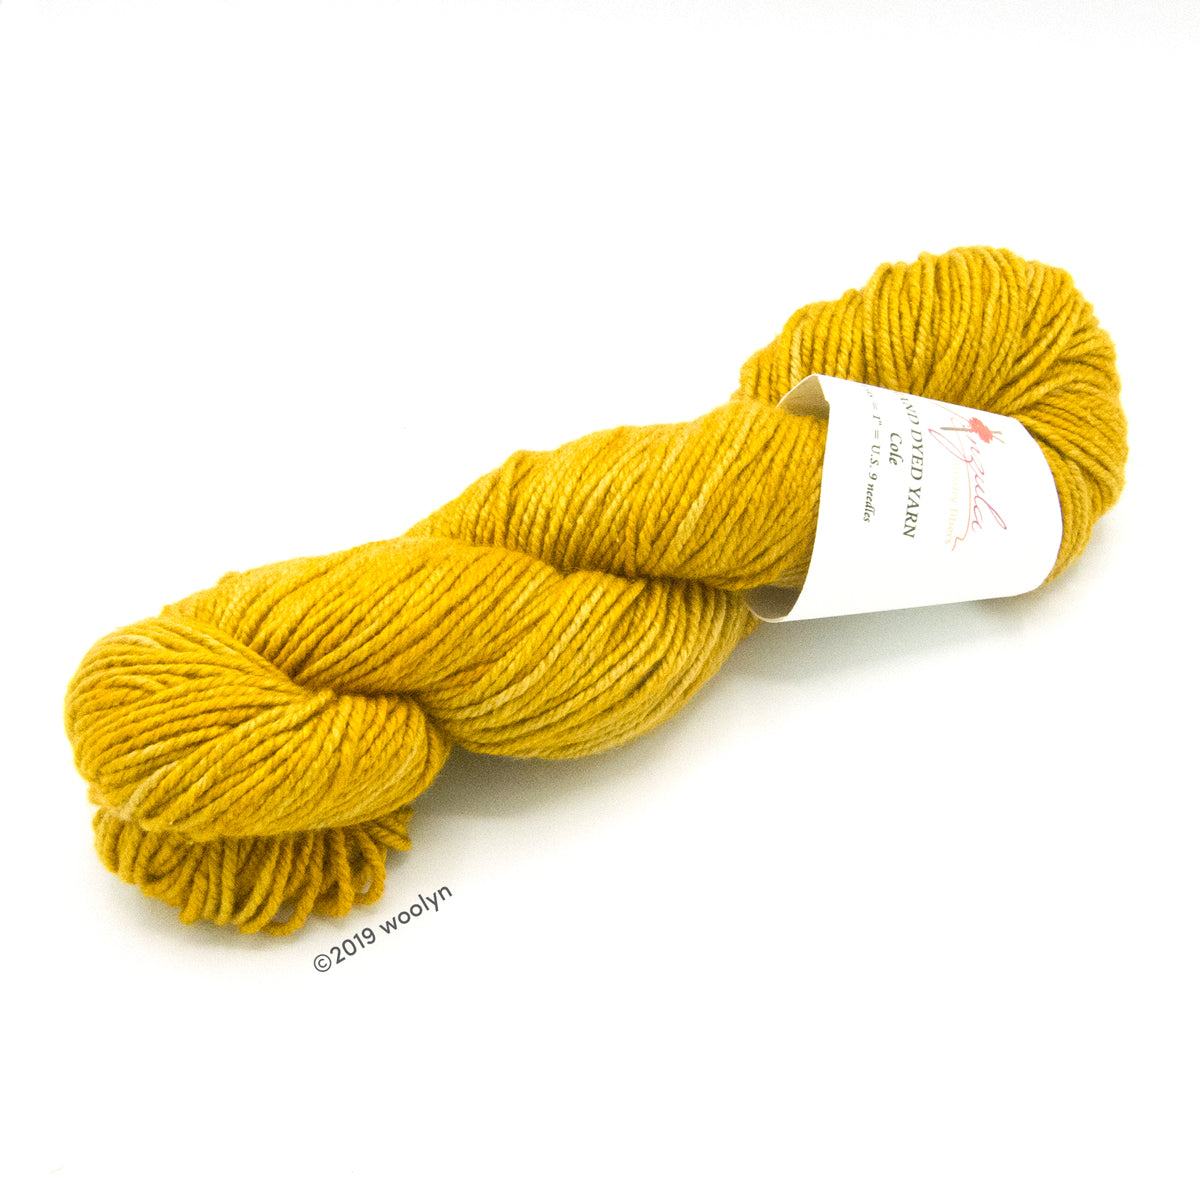 A twisted skein of Anzula Cole yarn in a warm yellow.